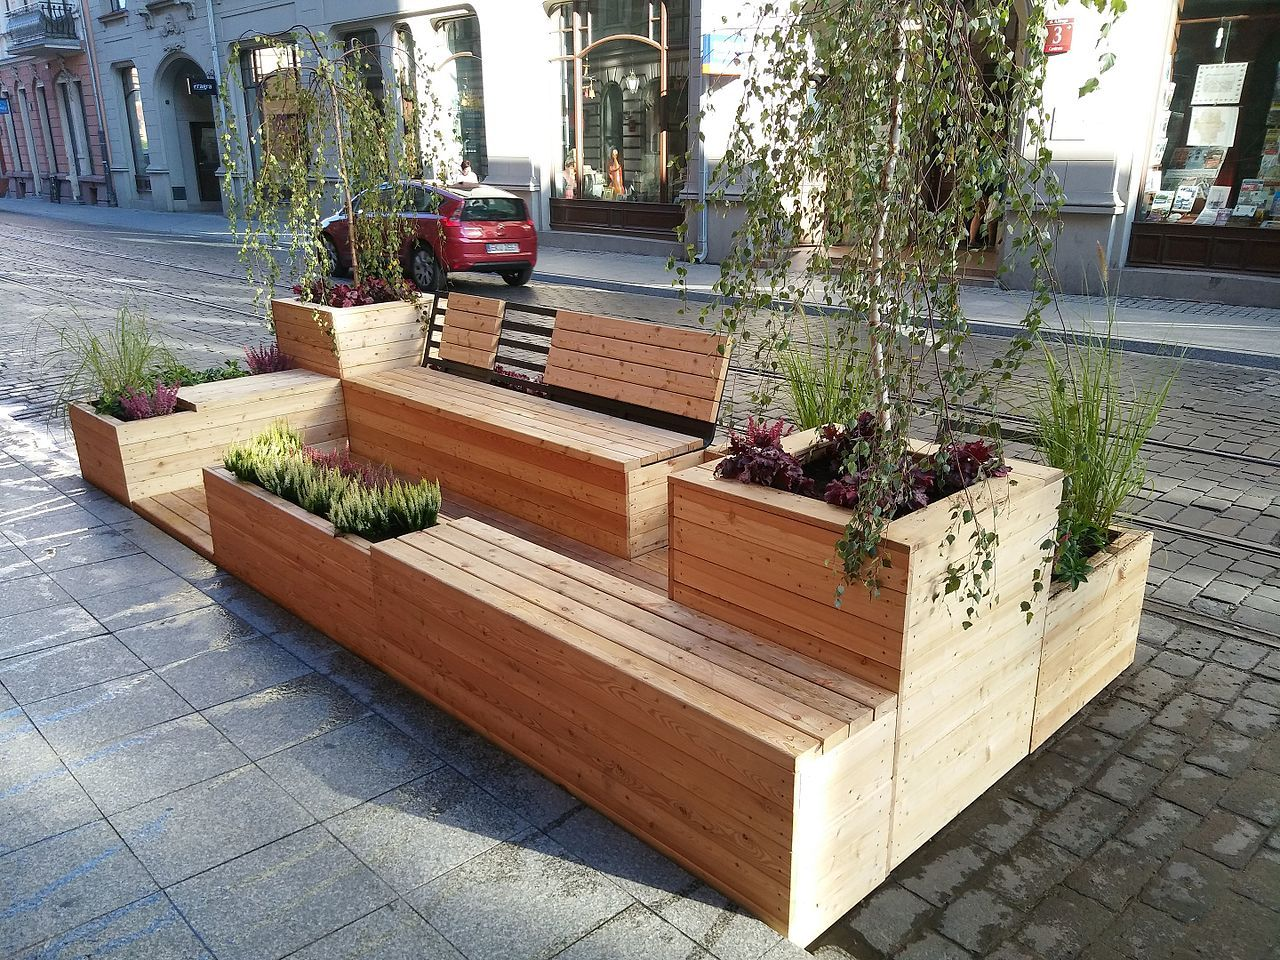 People Love Parklets and Businesses Can Make Them Happen